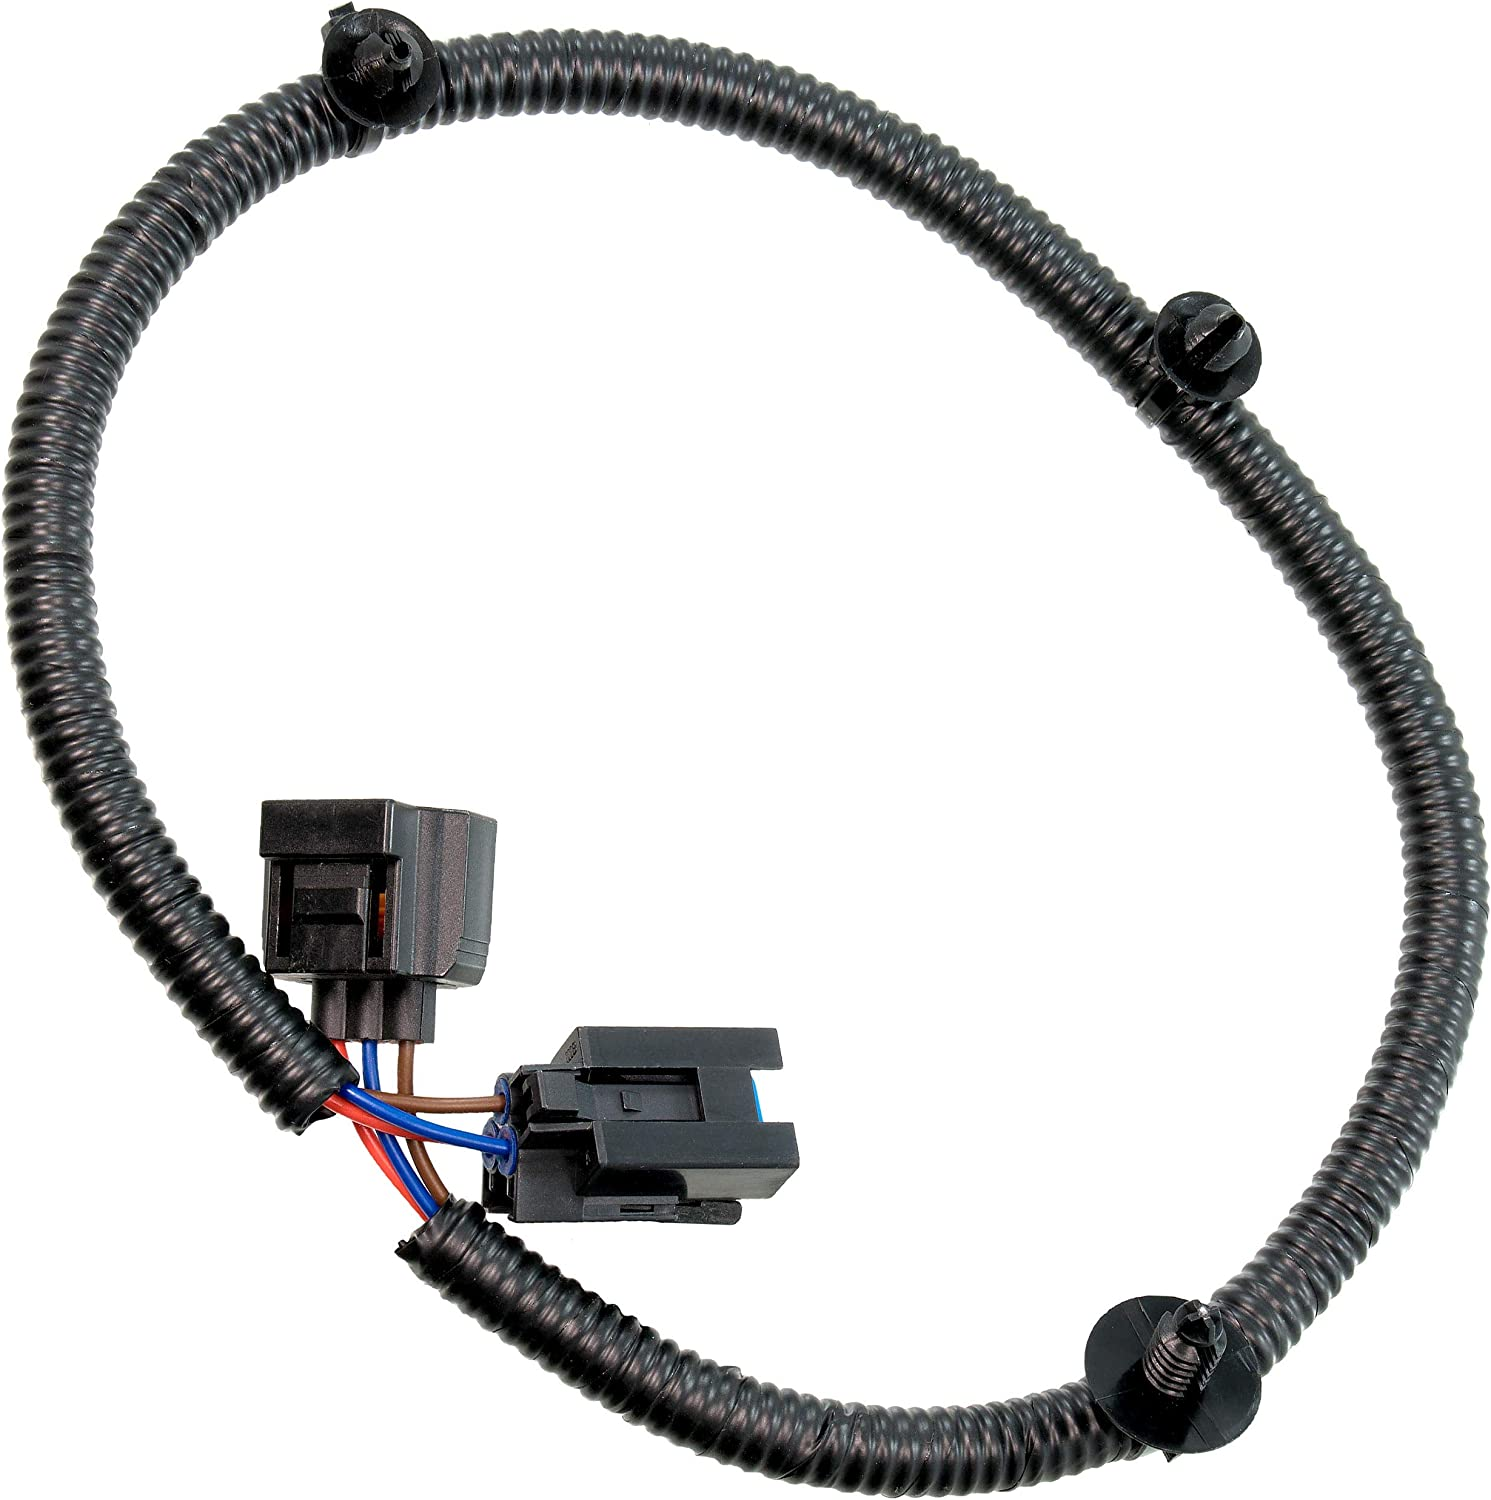 Amazon.com: APDTY 140078 Wire Wiring Connector Harness Fits Ford Transit  Connect Alternator (Replaces 4T1T-14305-AD, 4T1T14305AD, 4998243):  Automotive   Motorcraft Wiring Harness      Amazon.com